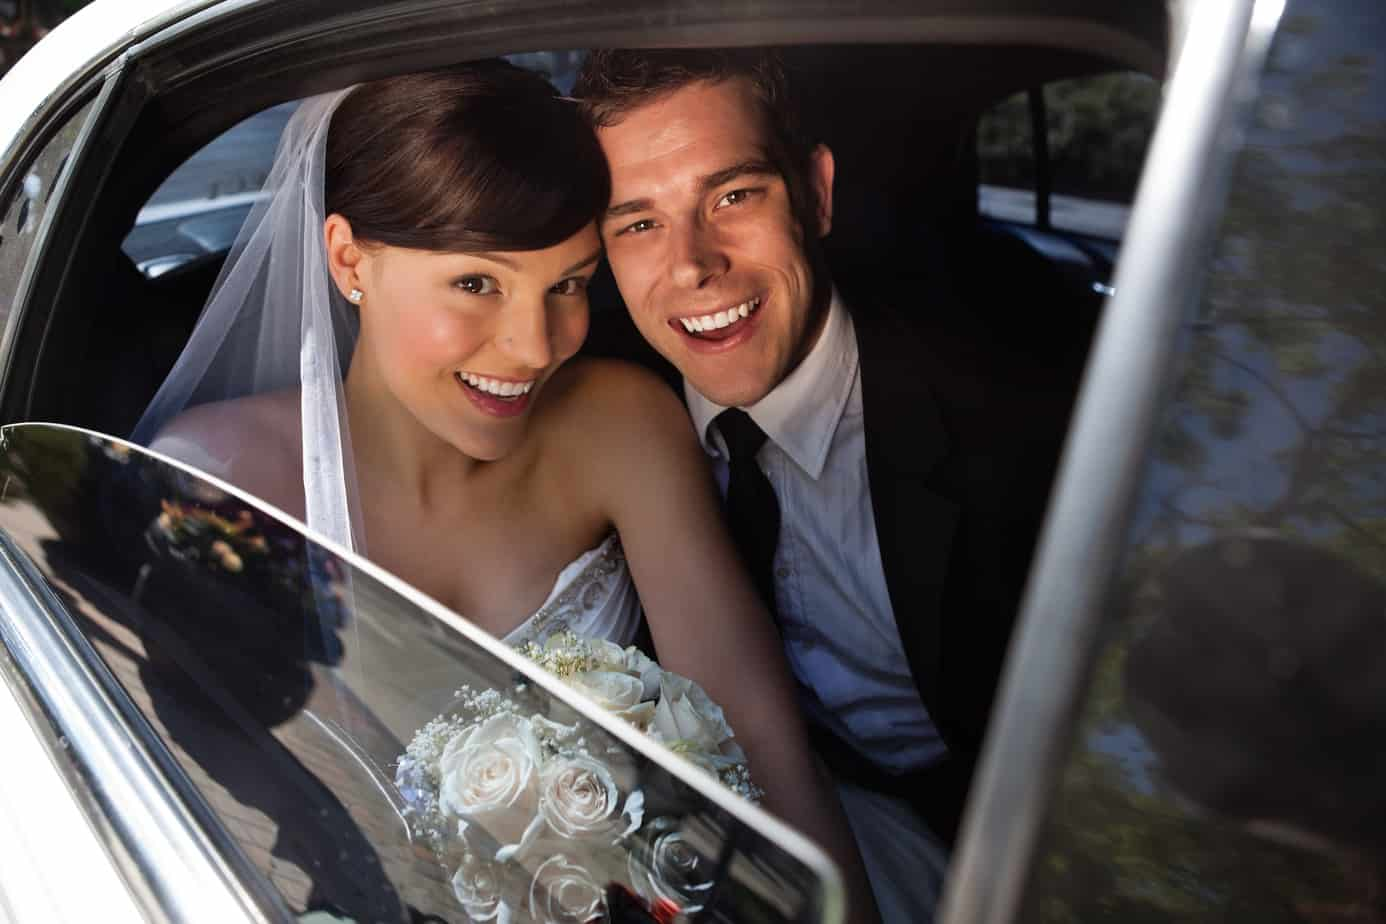 factors-to-consider-when-choosing-a-limo-service-for-a-wedding